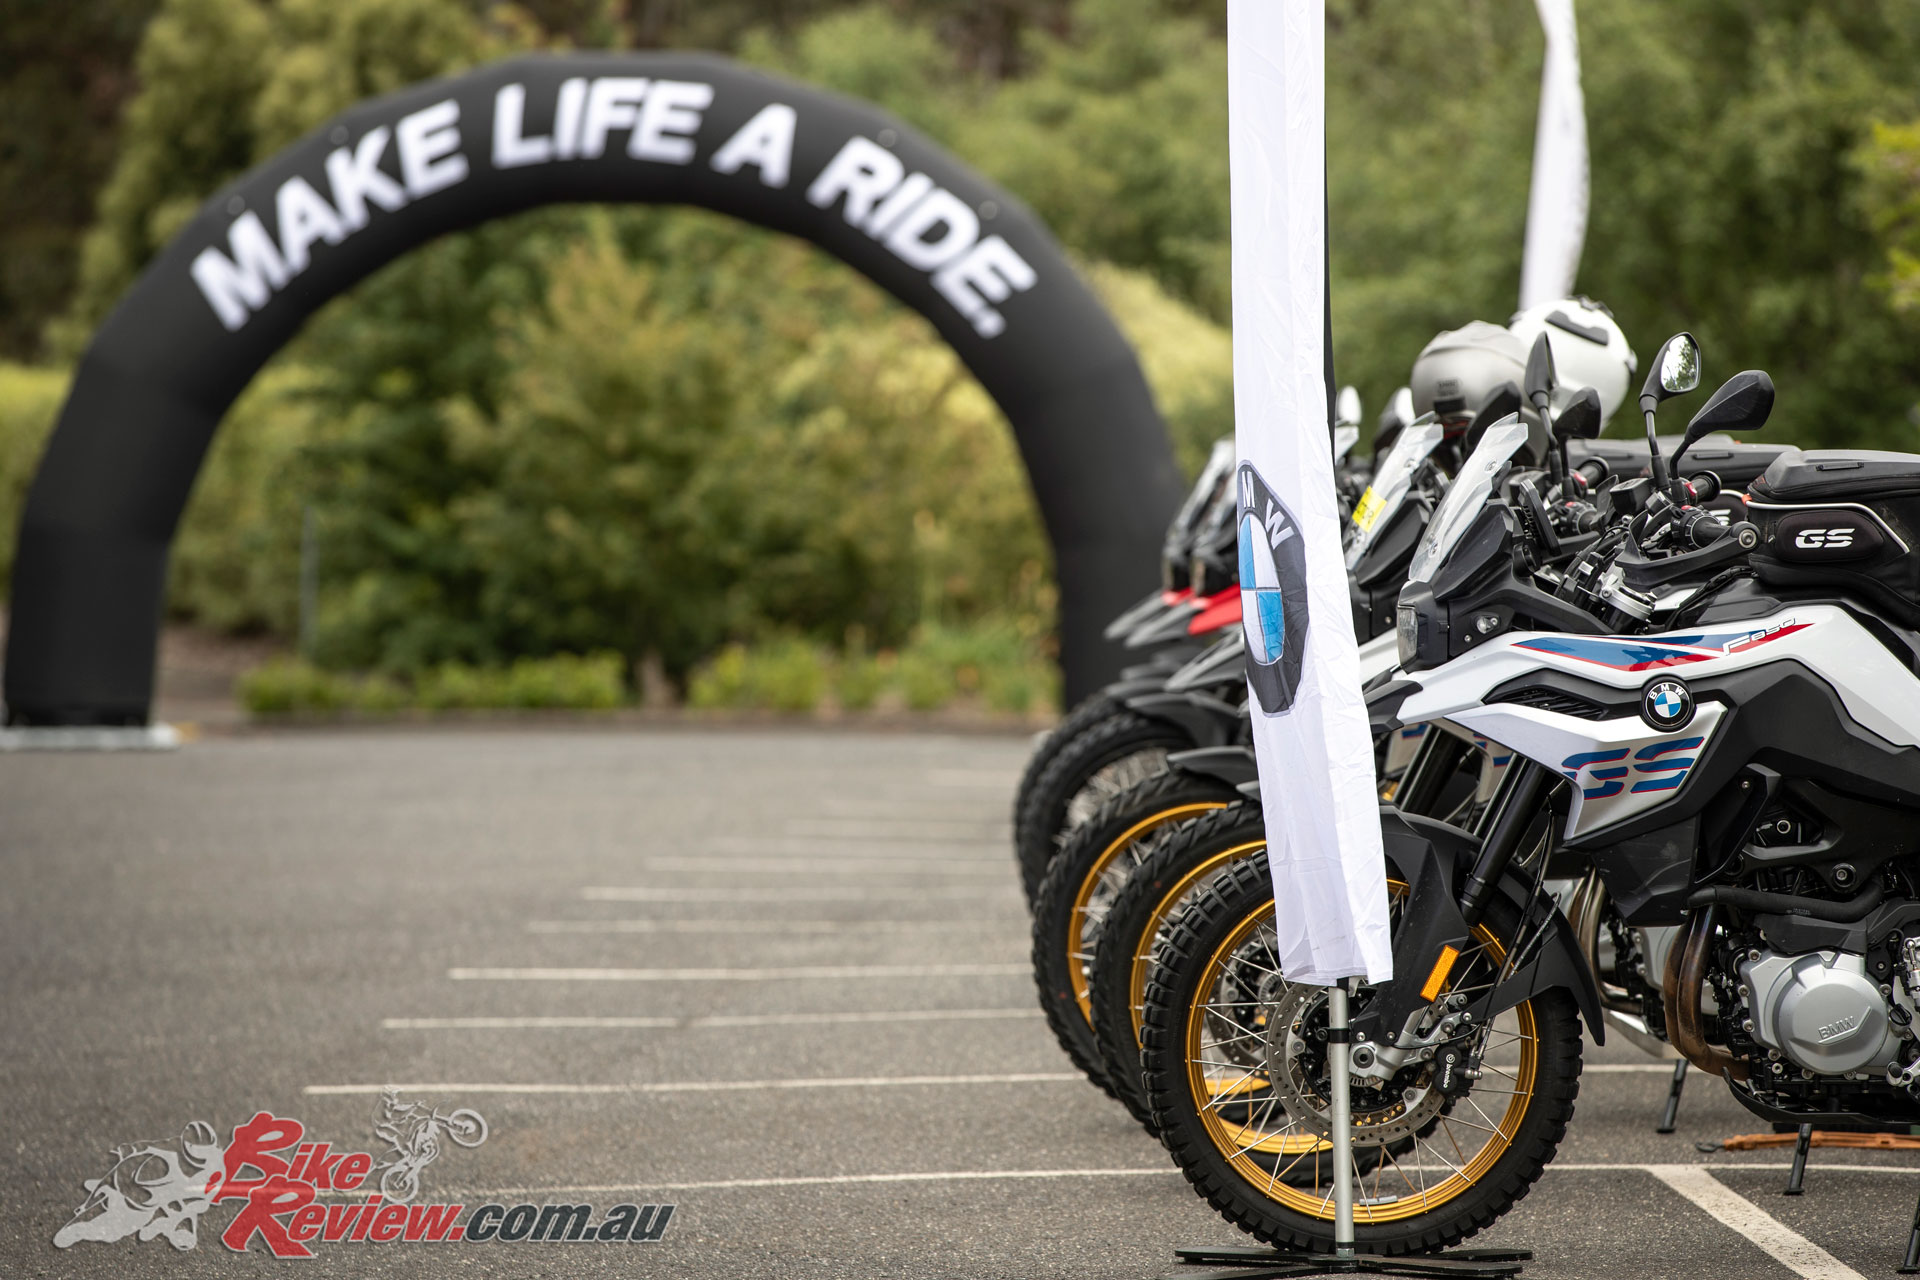 The Australian launch saw the F 850 GS and F 750 GS